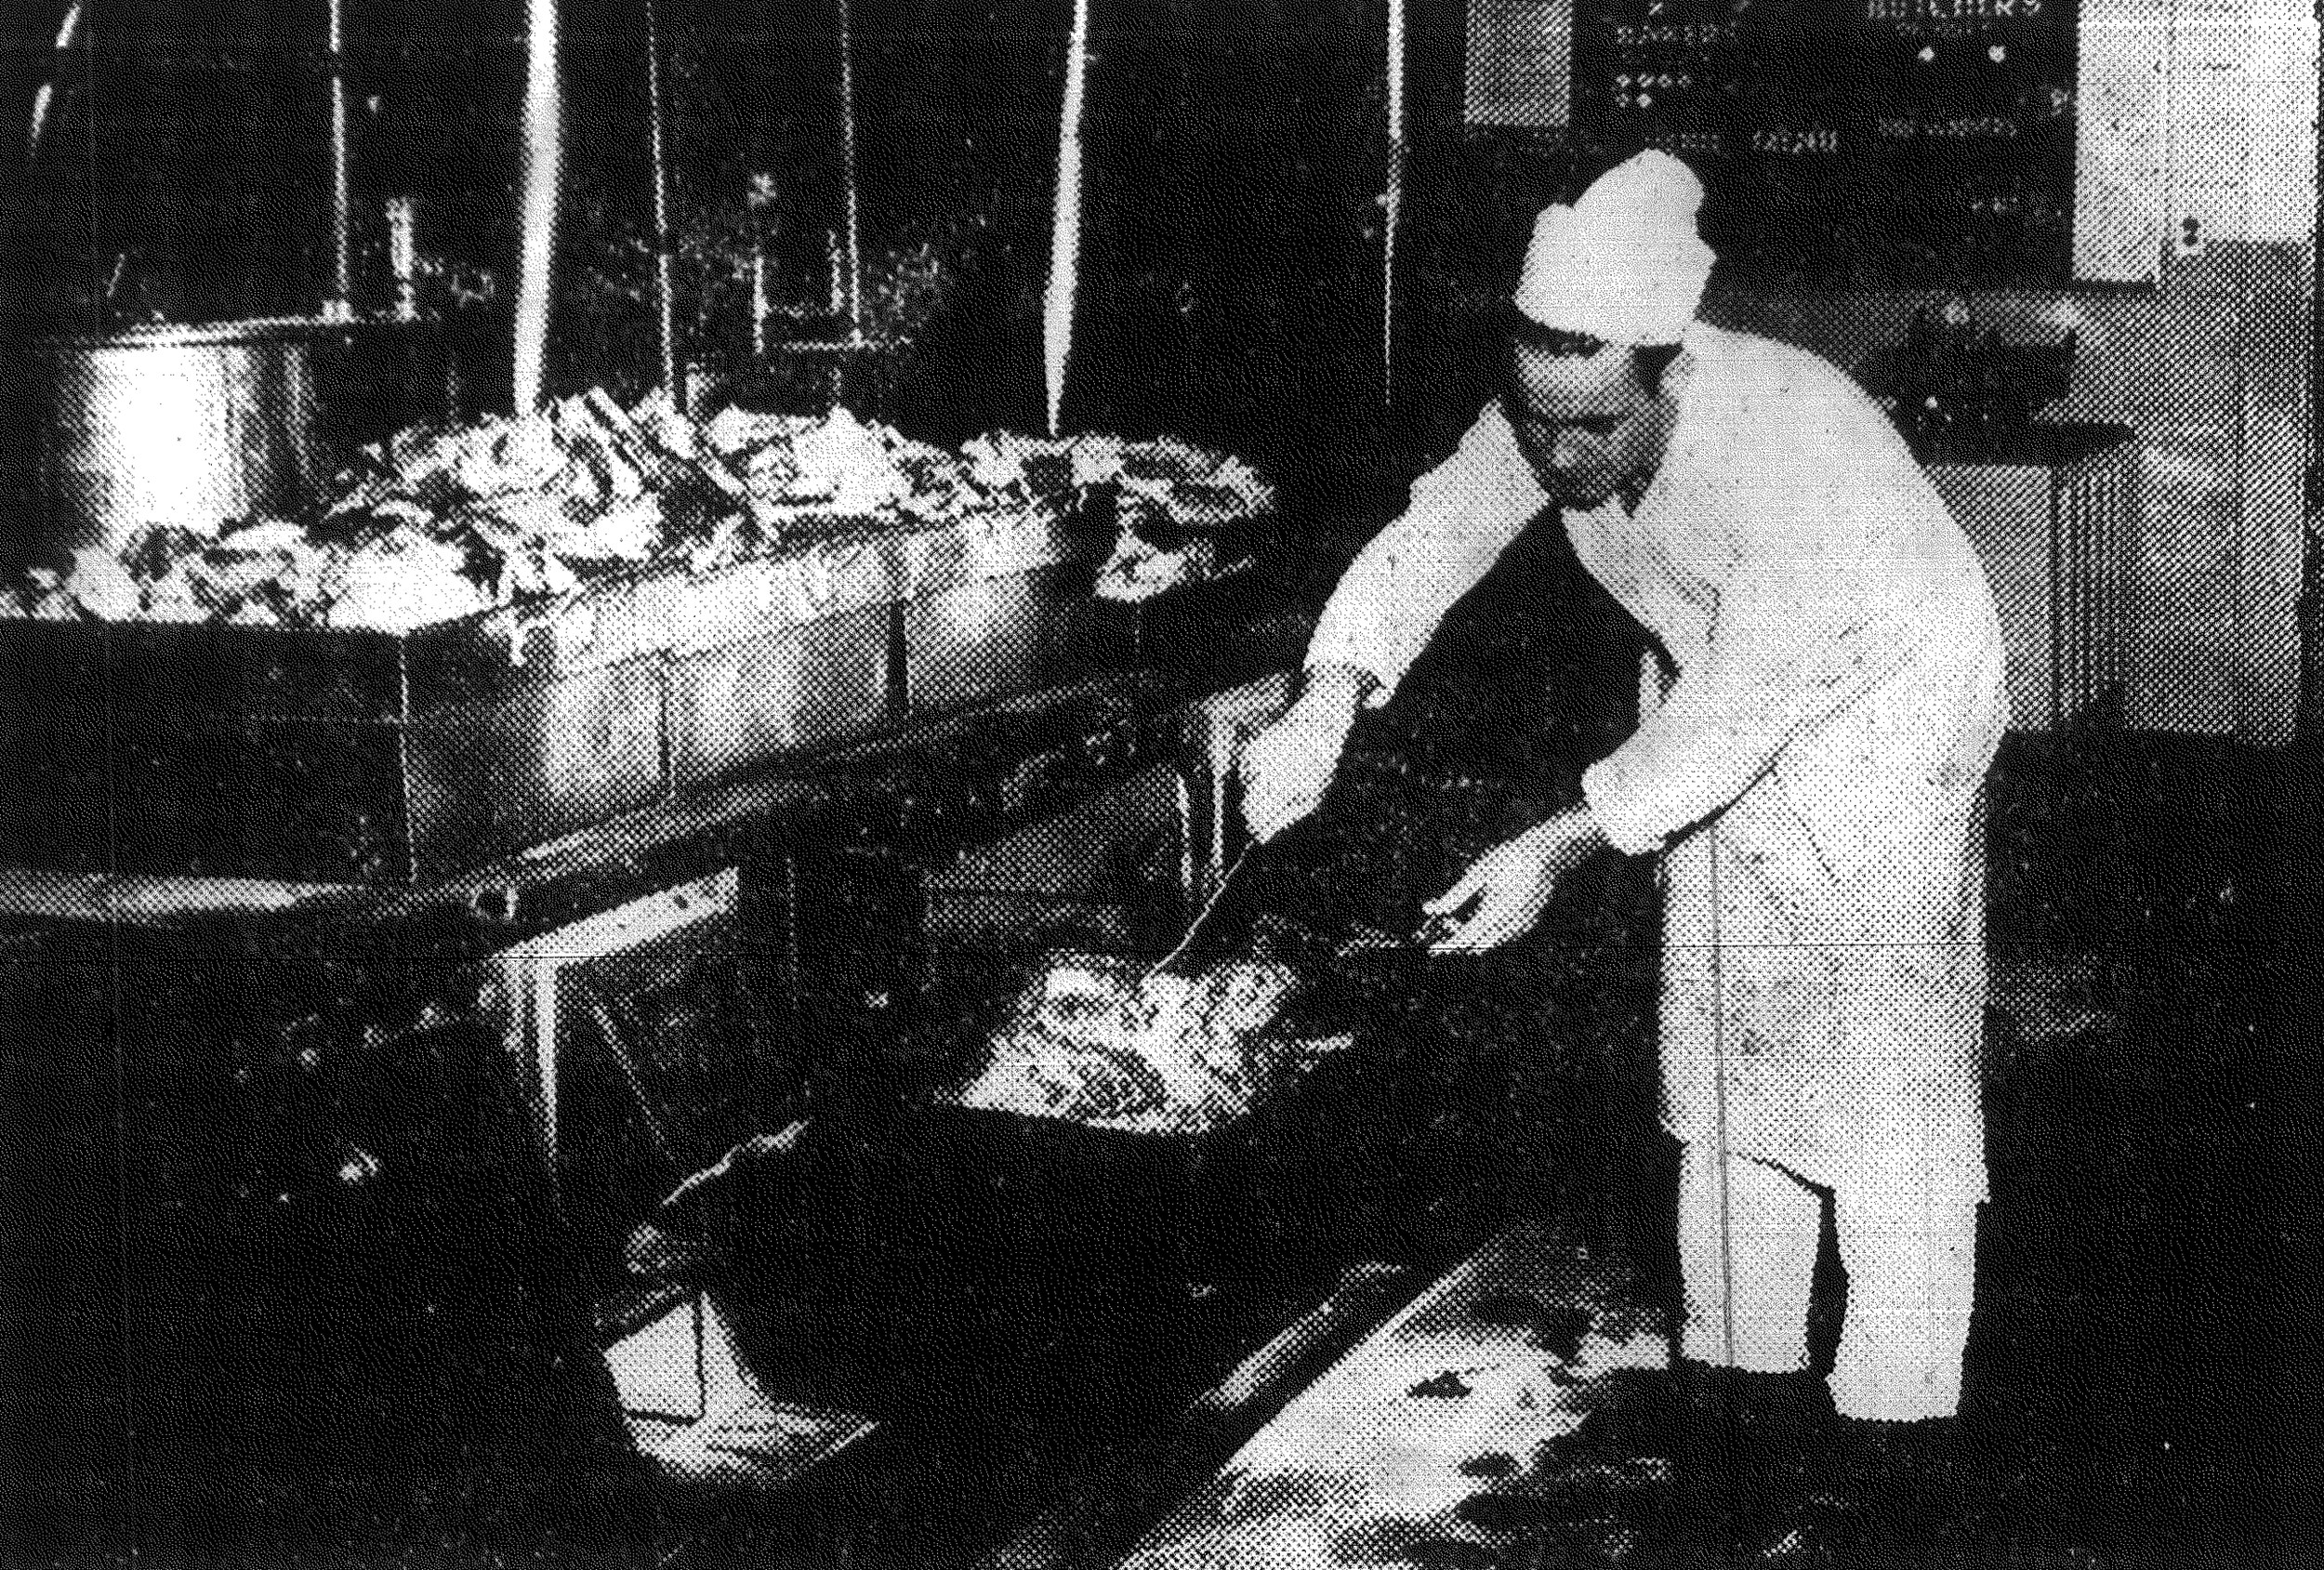 The last of 200 turkeys comes out the oven at the consolidated mess on Thanksgiving morning. The enlisted men consumed more than 3,000 pounds of turkey during the feast.